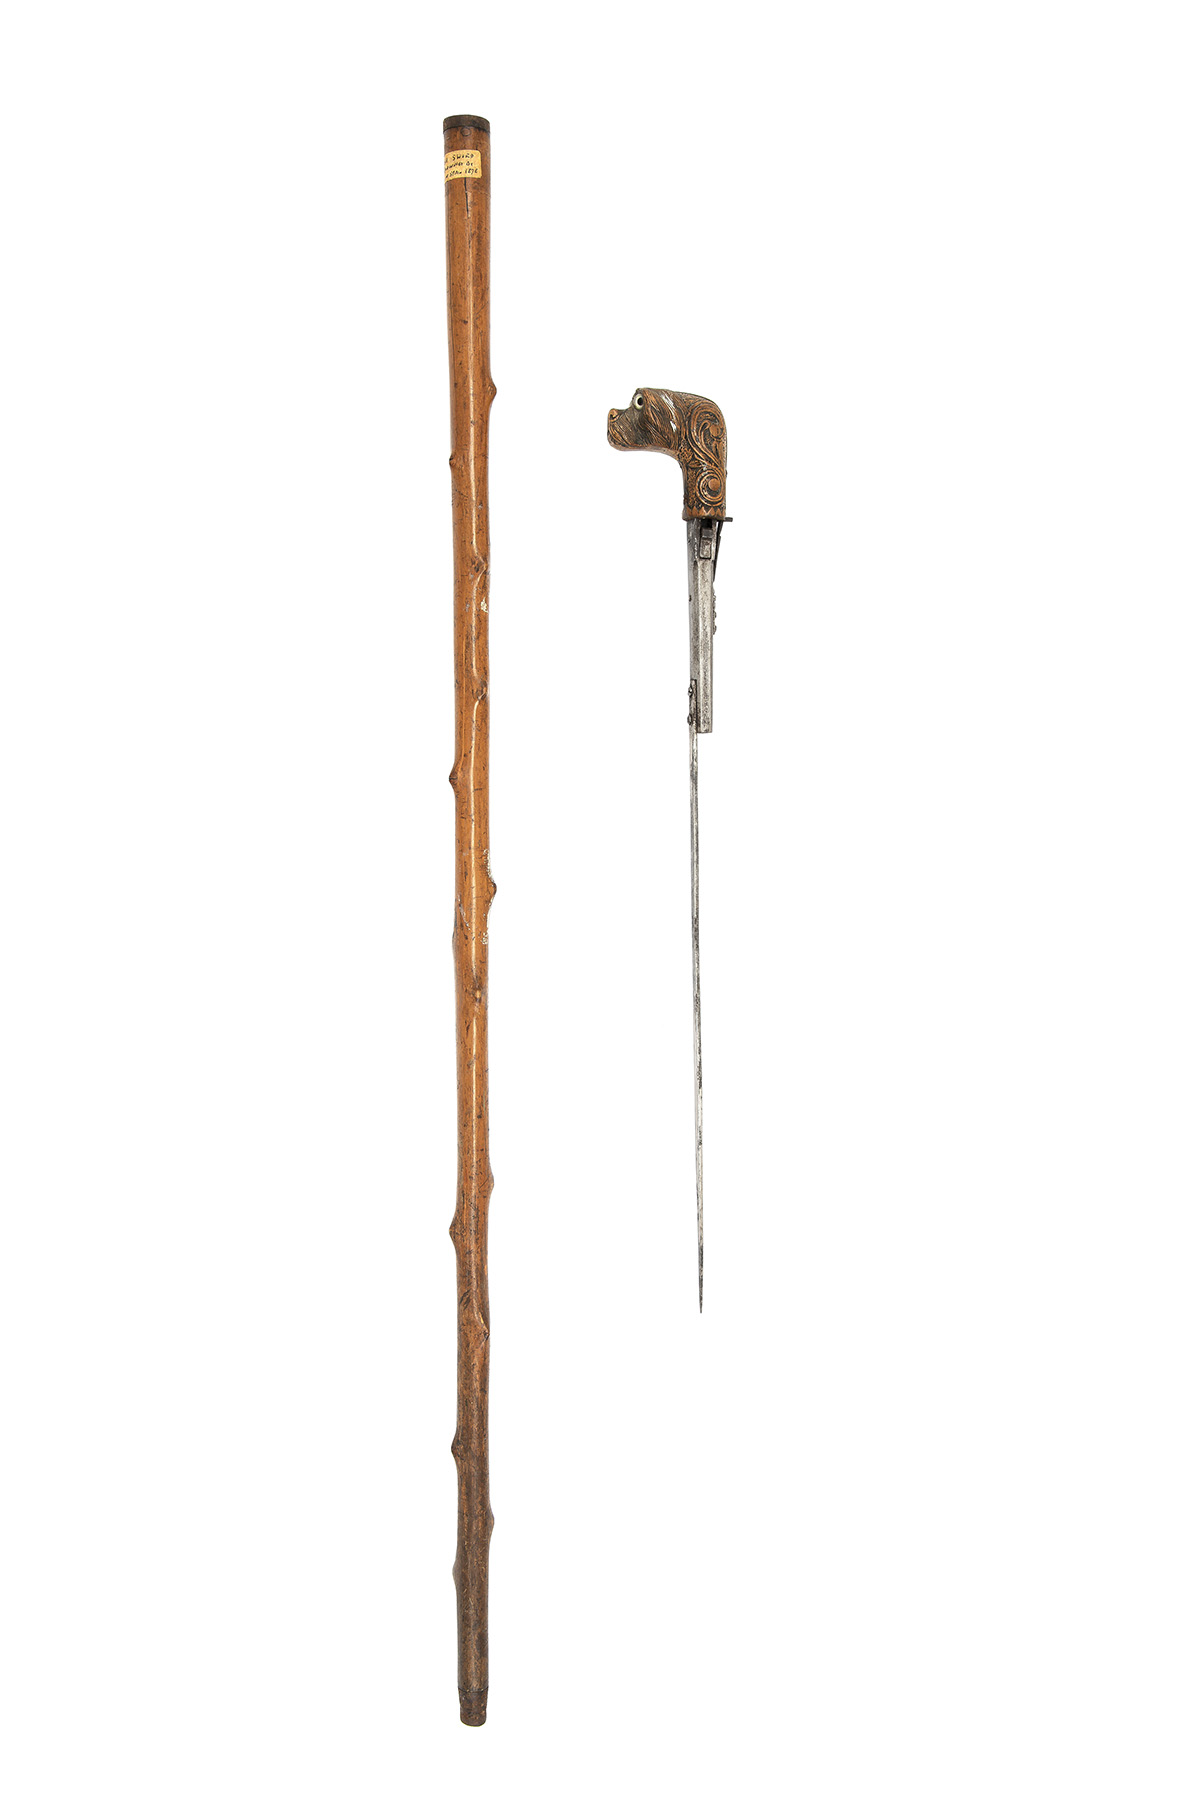 A SCARCE 7mm PINFIRE PISTOL & DAGGER COMBINATION WALKING-STICK, UNSIGNED, no visible serial